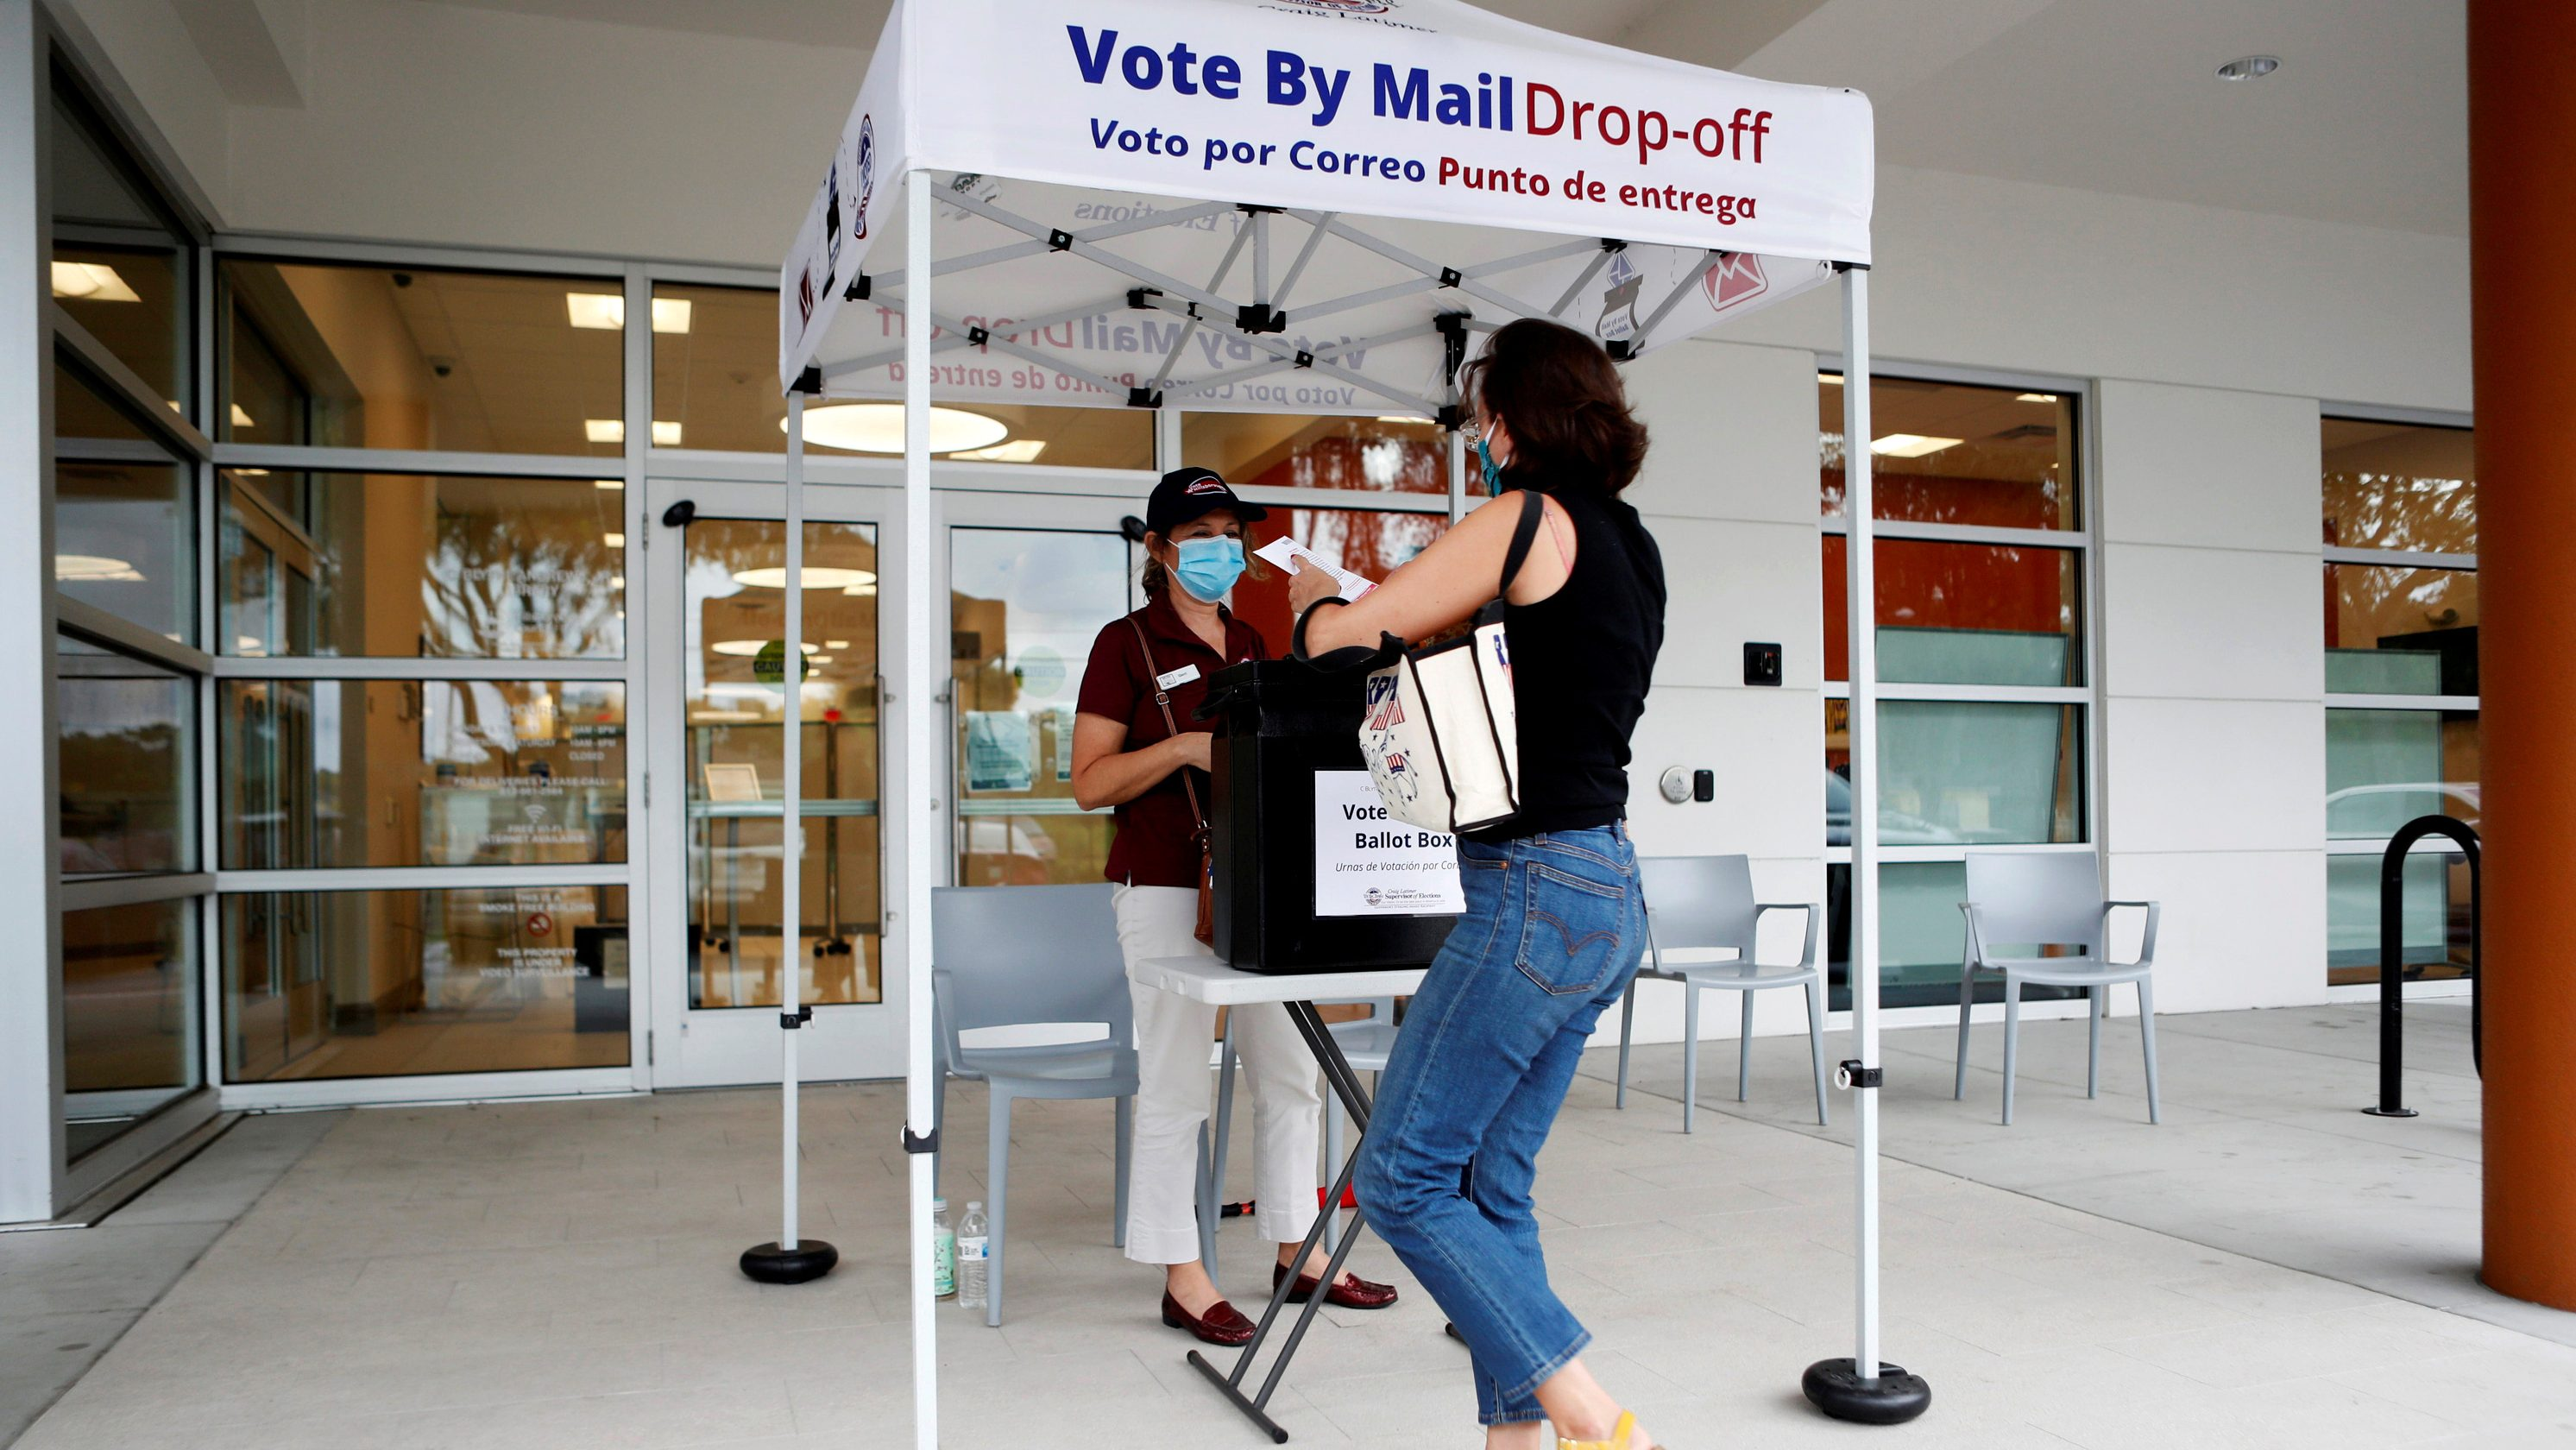 A woman prepares to cast her mail-in voter ballot the last day of early voting for the U.S. presidential election in Florida